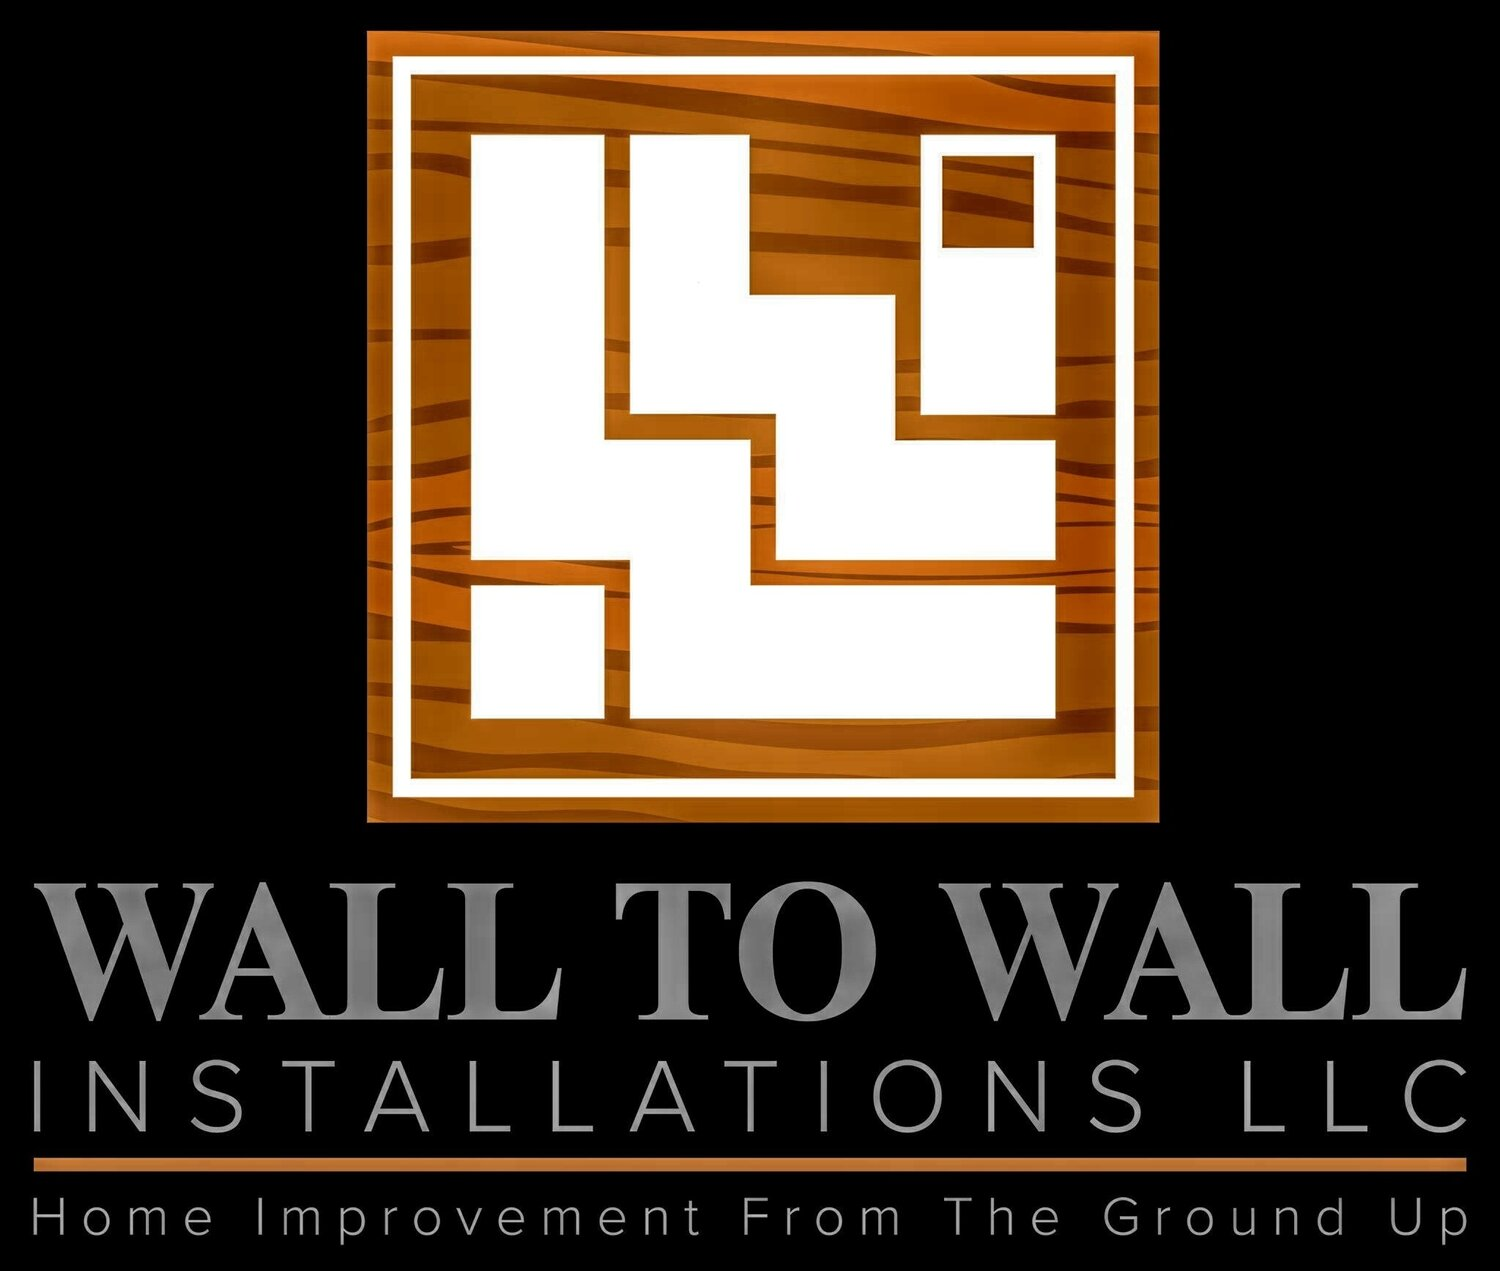 WALL TO WALL INSTALLATIONS LLC